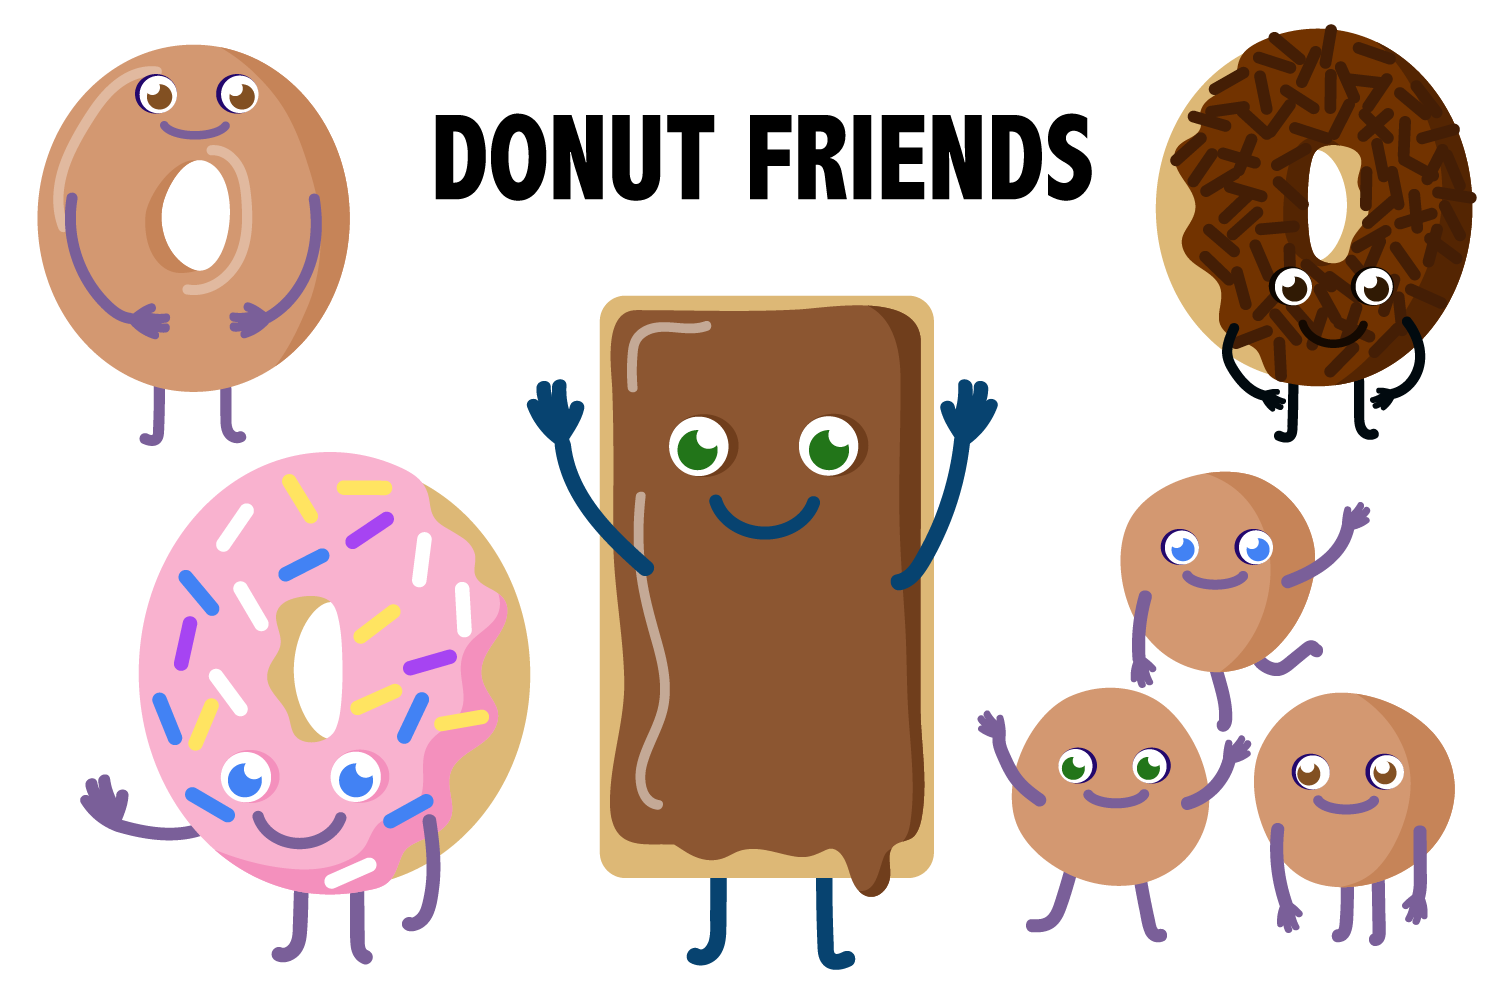 Download Free Donut Friends Clipart Graphic By Mine Eyes Design Creative Fabrica for Cricut Explore, Silhouette and other cutting machines.